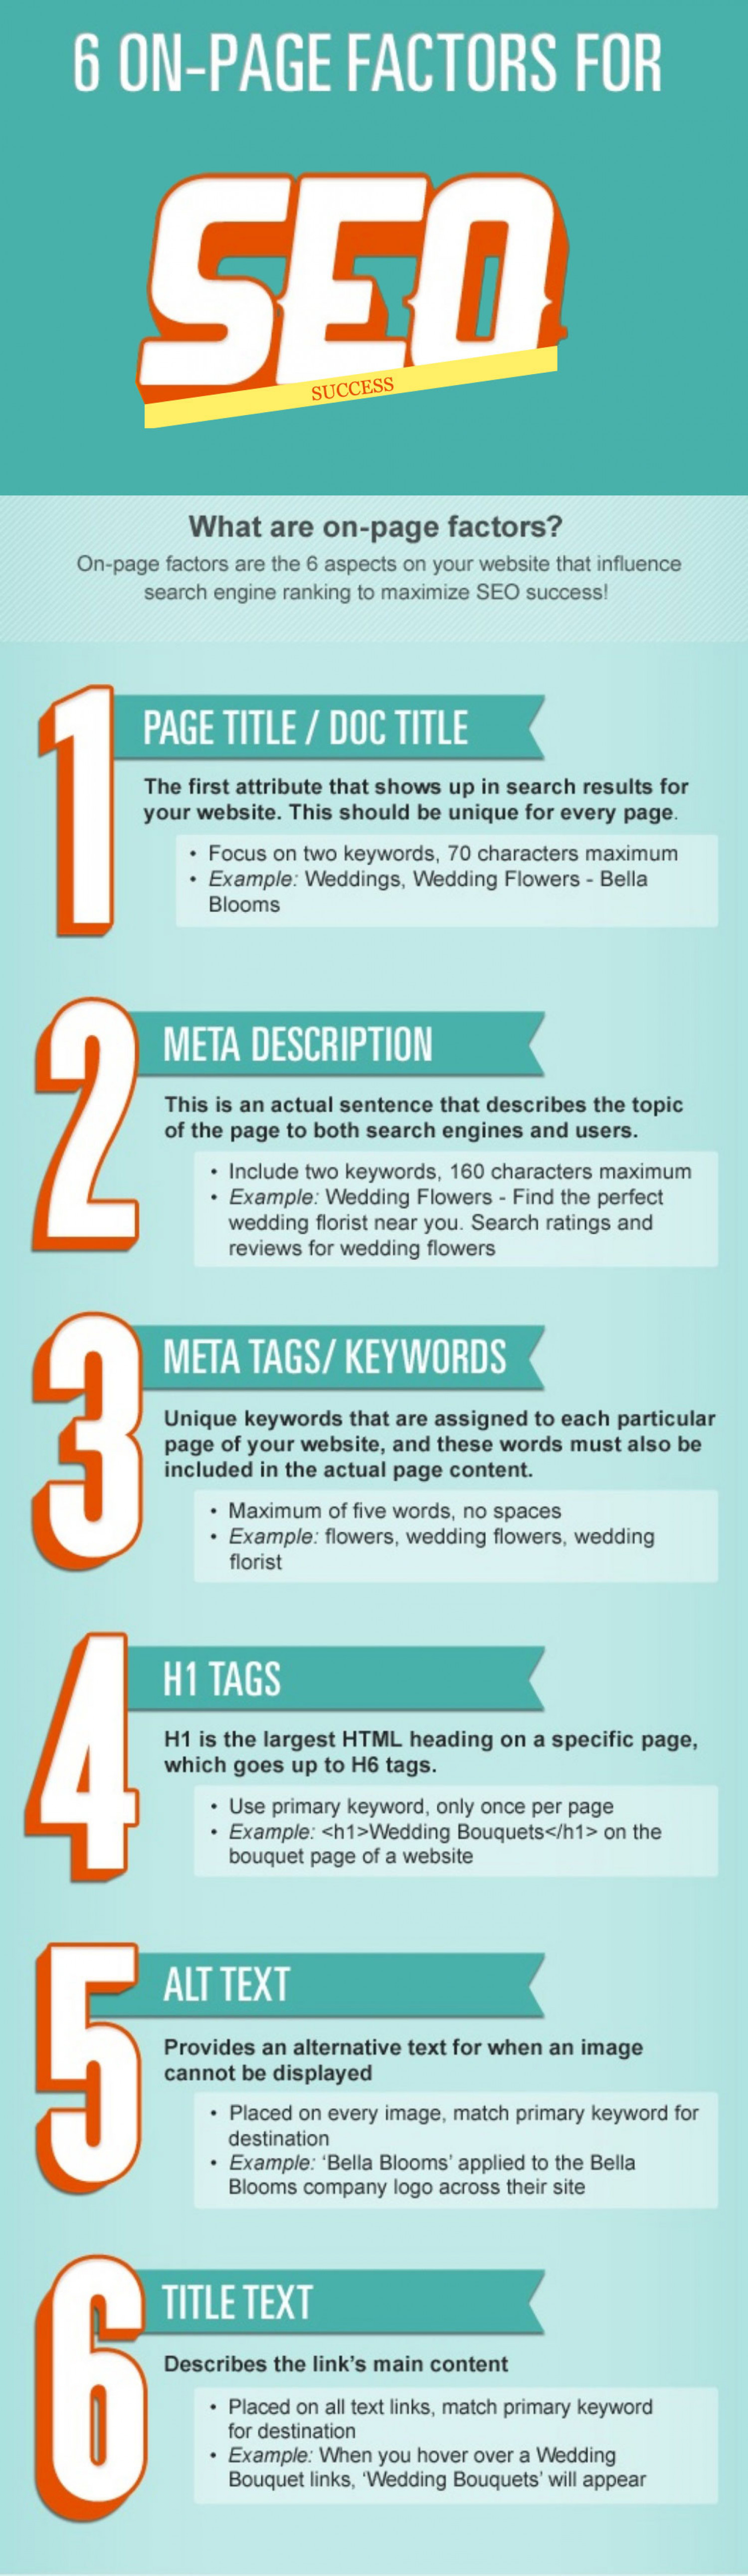 6 On-Page Factors For SEO Infographic